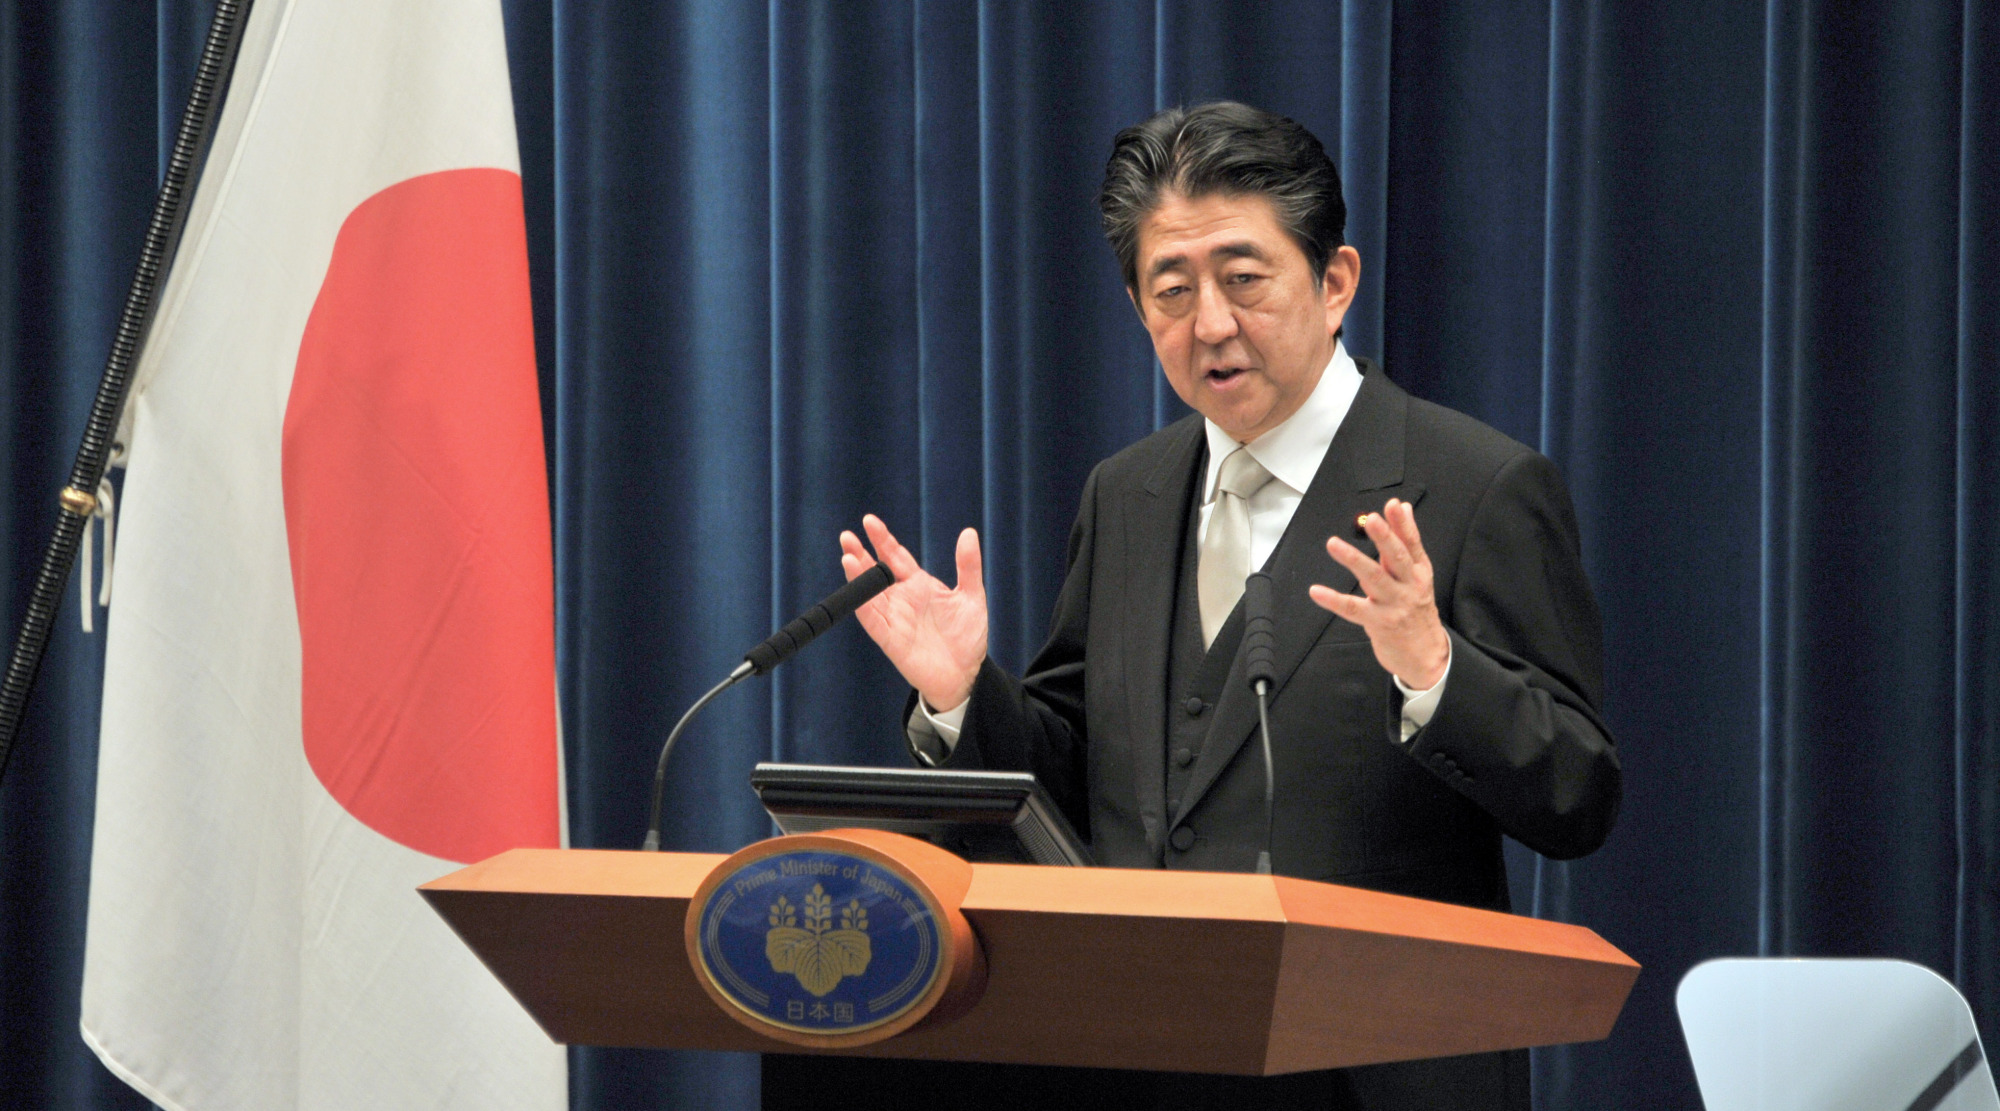 Prime Minister Shinzo Abe speaks during a news conference at the Prime Minister's Office in August last year. On Sunday, Abe plans to officially announce his intention to run in the Liberal Democratic Party's presidential race, set for Sept. 20. | YOSHIAKI MIURA